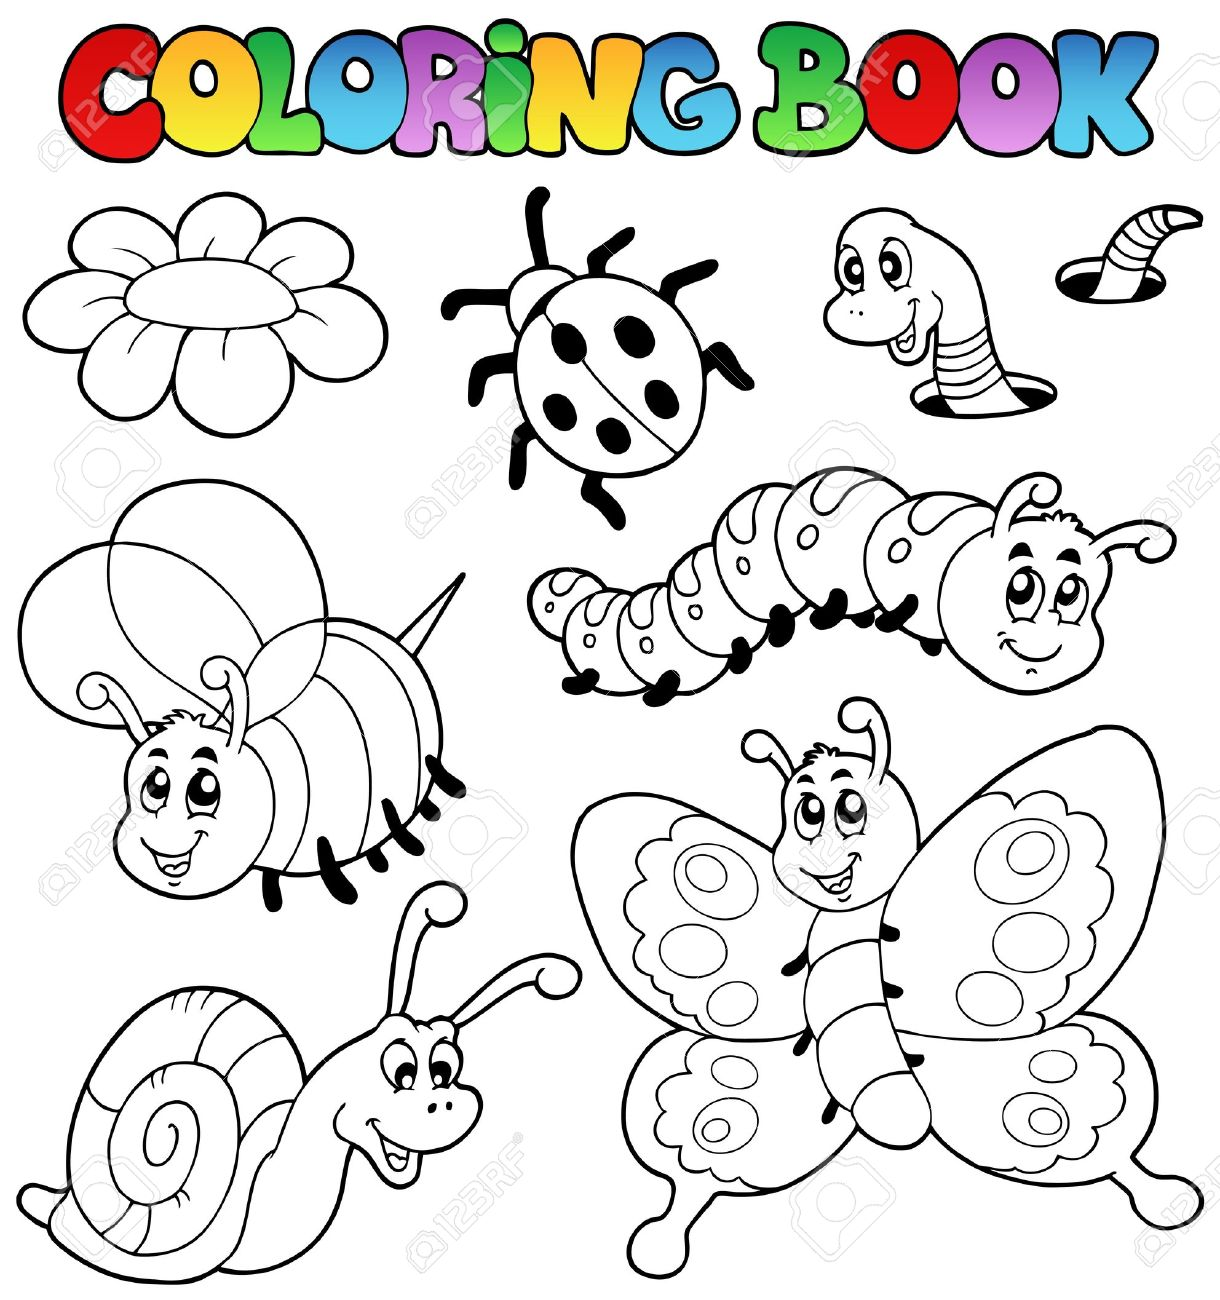 Coloring book with small animals 2 - vector illustration. Stock Vector - 9443073